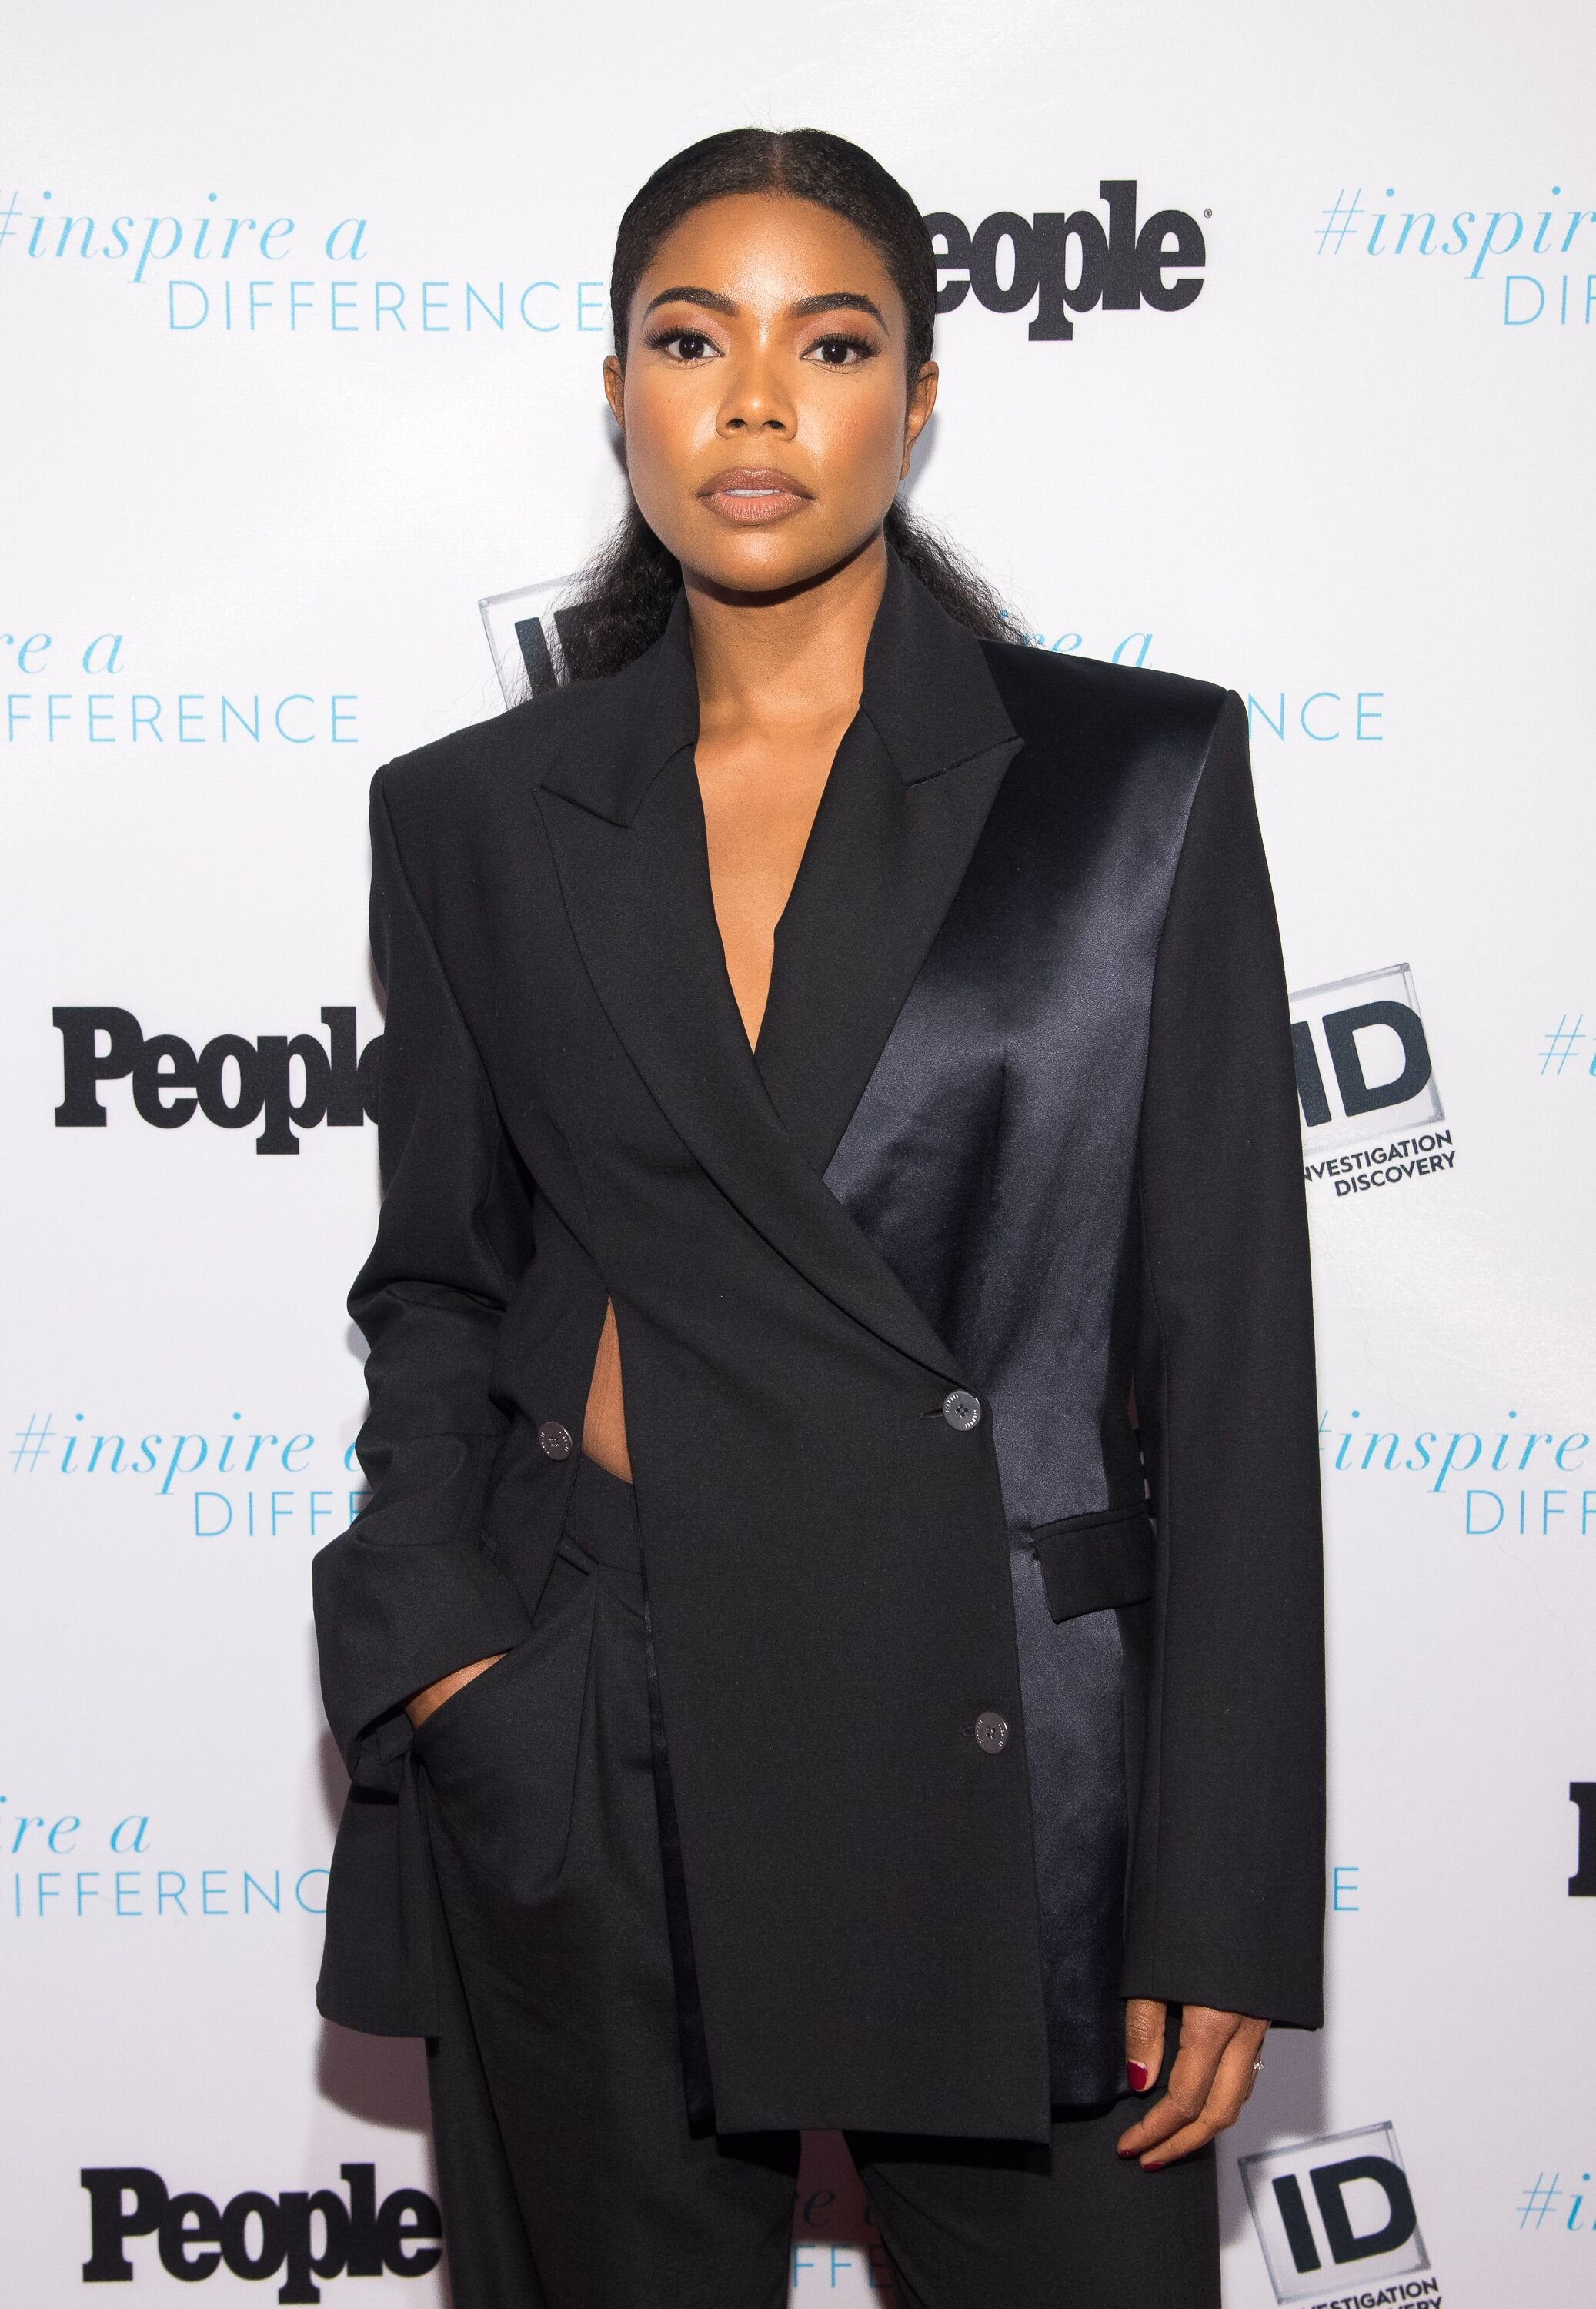 Gabrielle Union attends the Inspire A Difference Honors event at Dream Hotel on November 2, 2017 in New York City | Photo: Getty Images